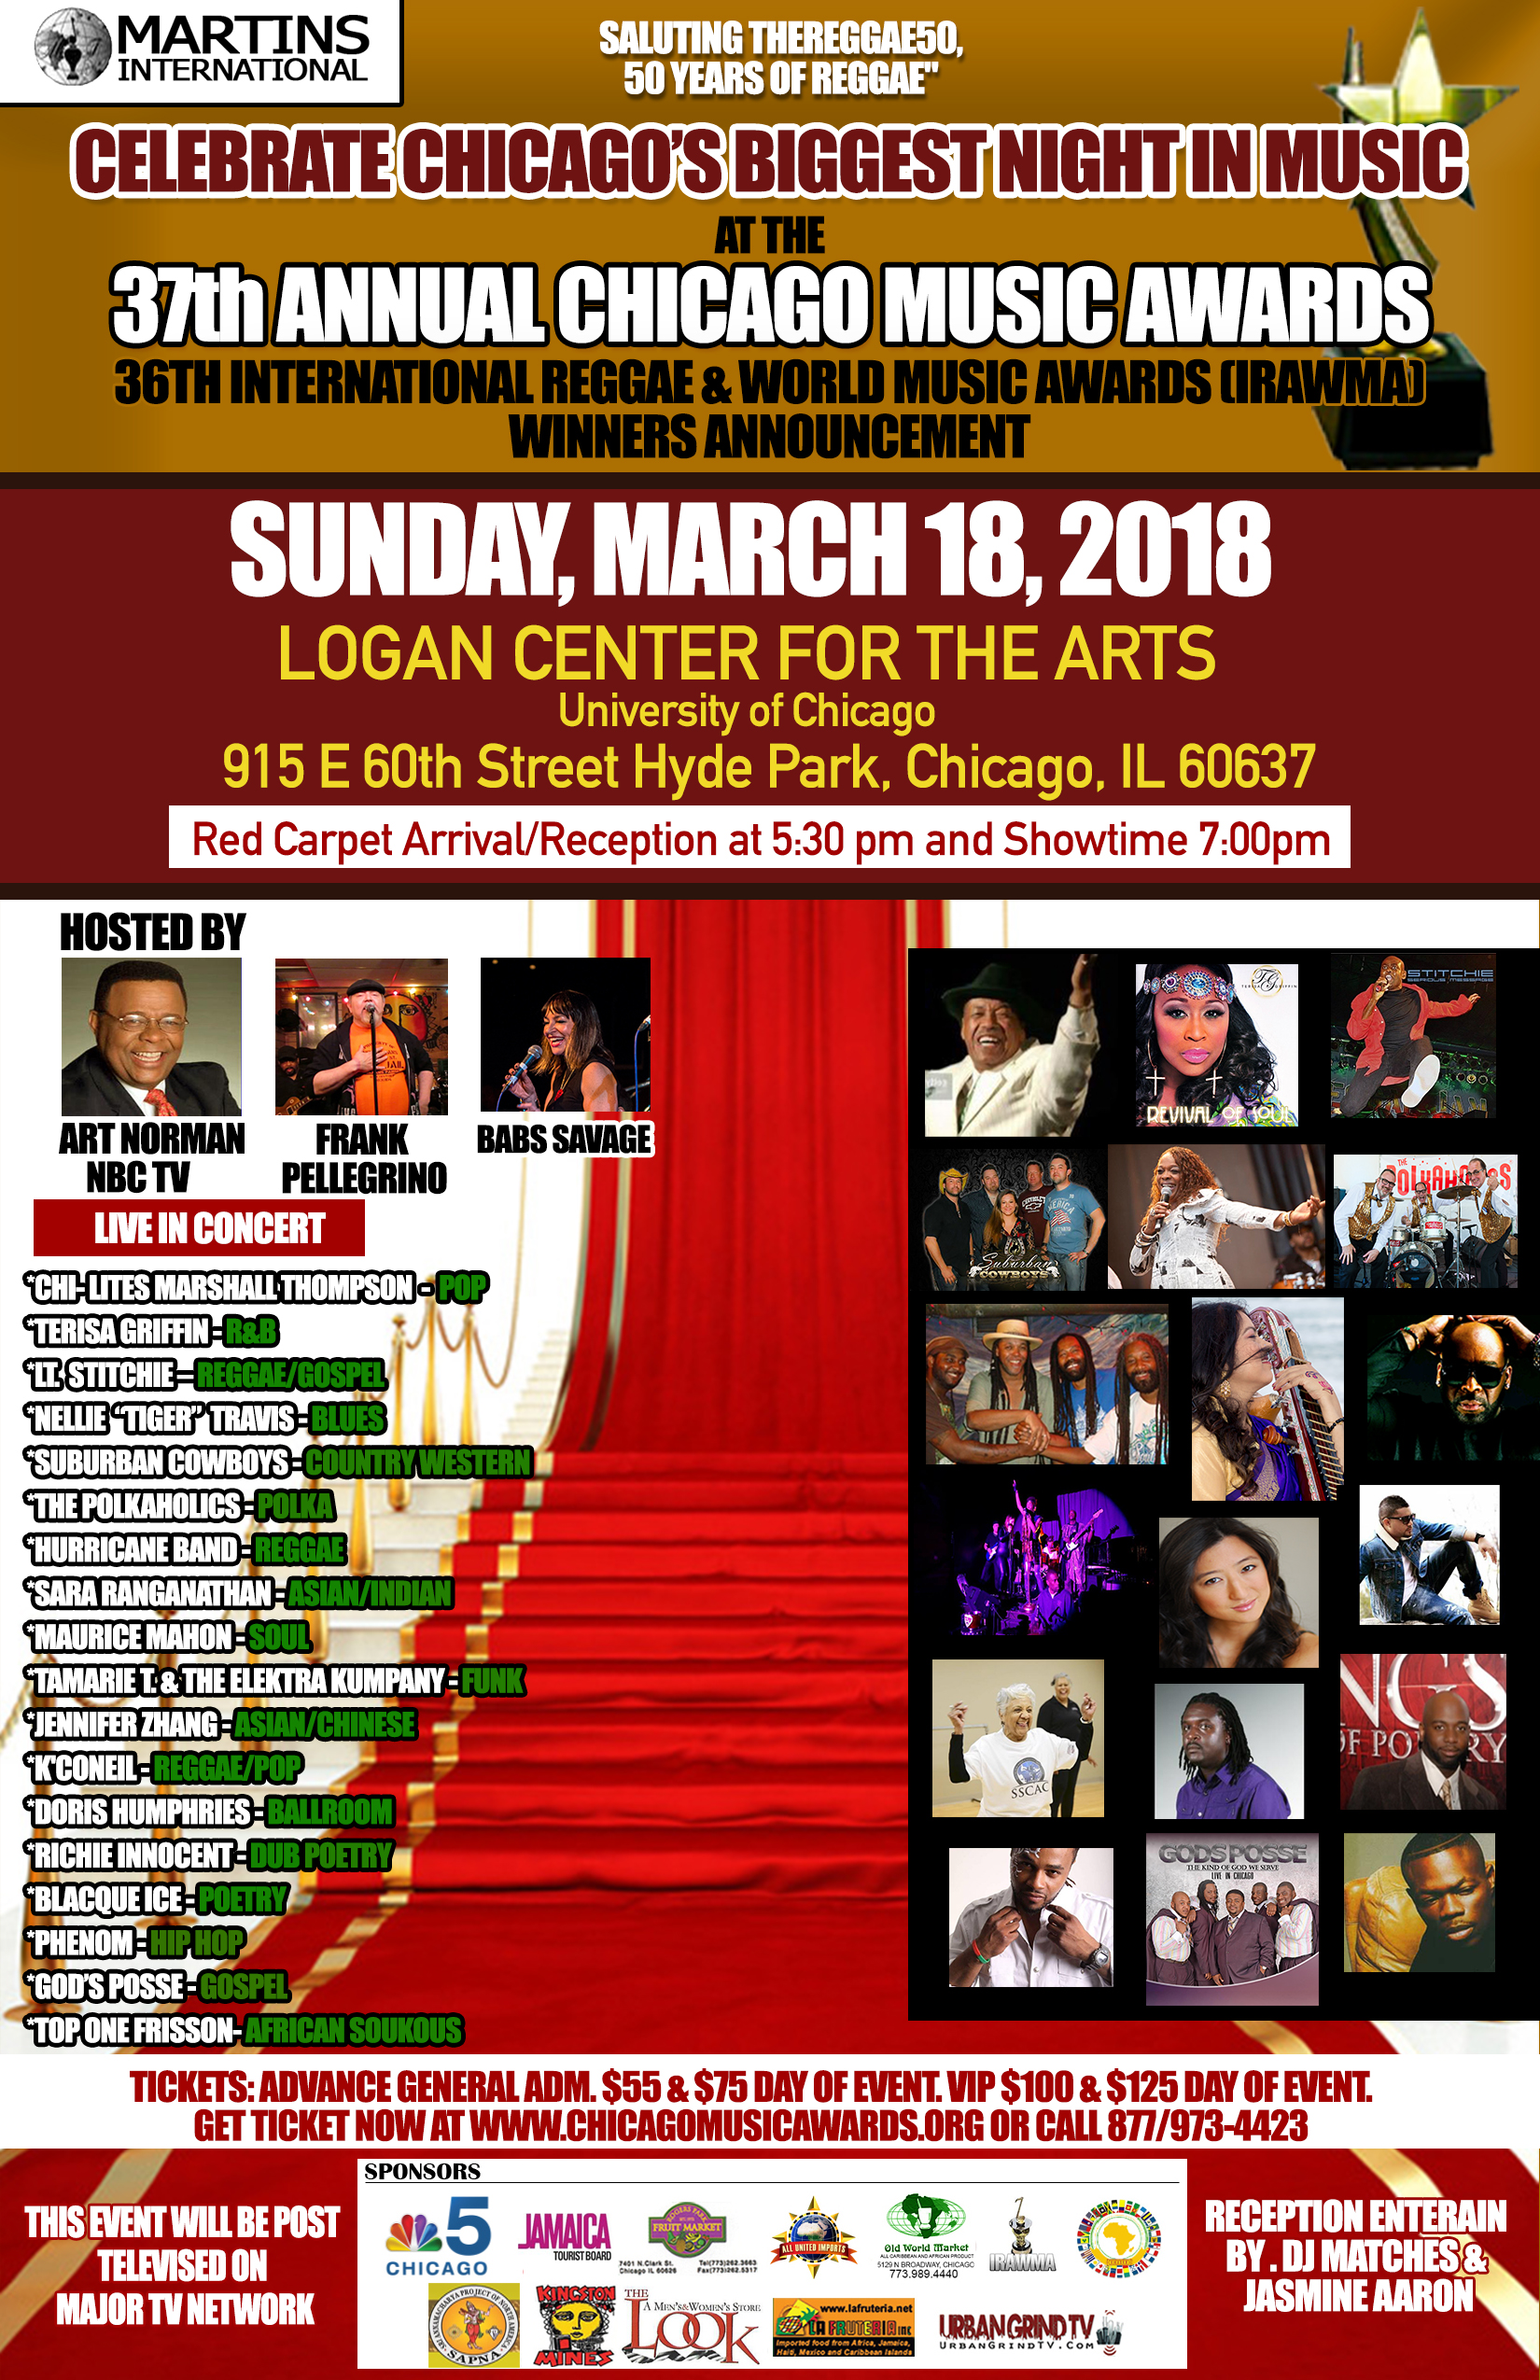 Official flyer with performers- sponsors- hosts and more – 37th CMA and 36 IRAWMA